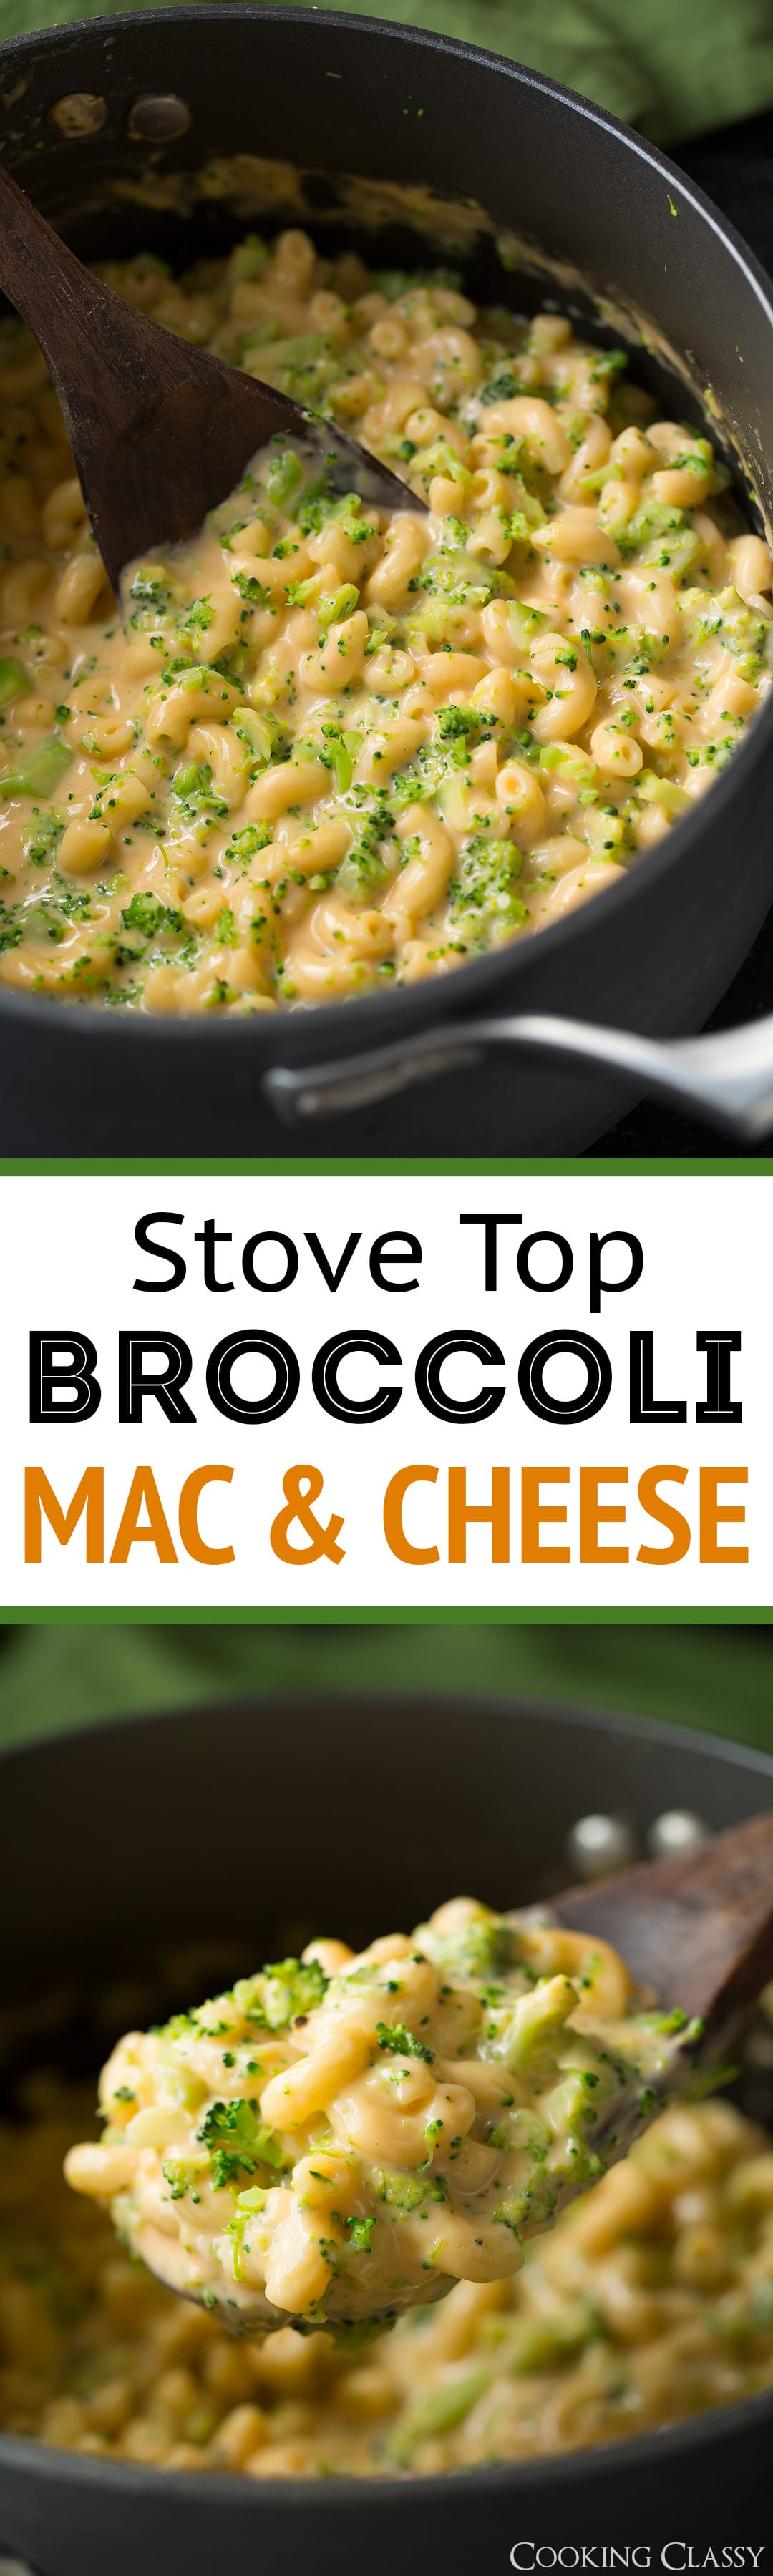 http://www.cookingclassy.com/stove-top-broccoli-mac-and-cheese/